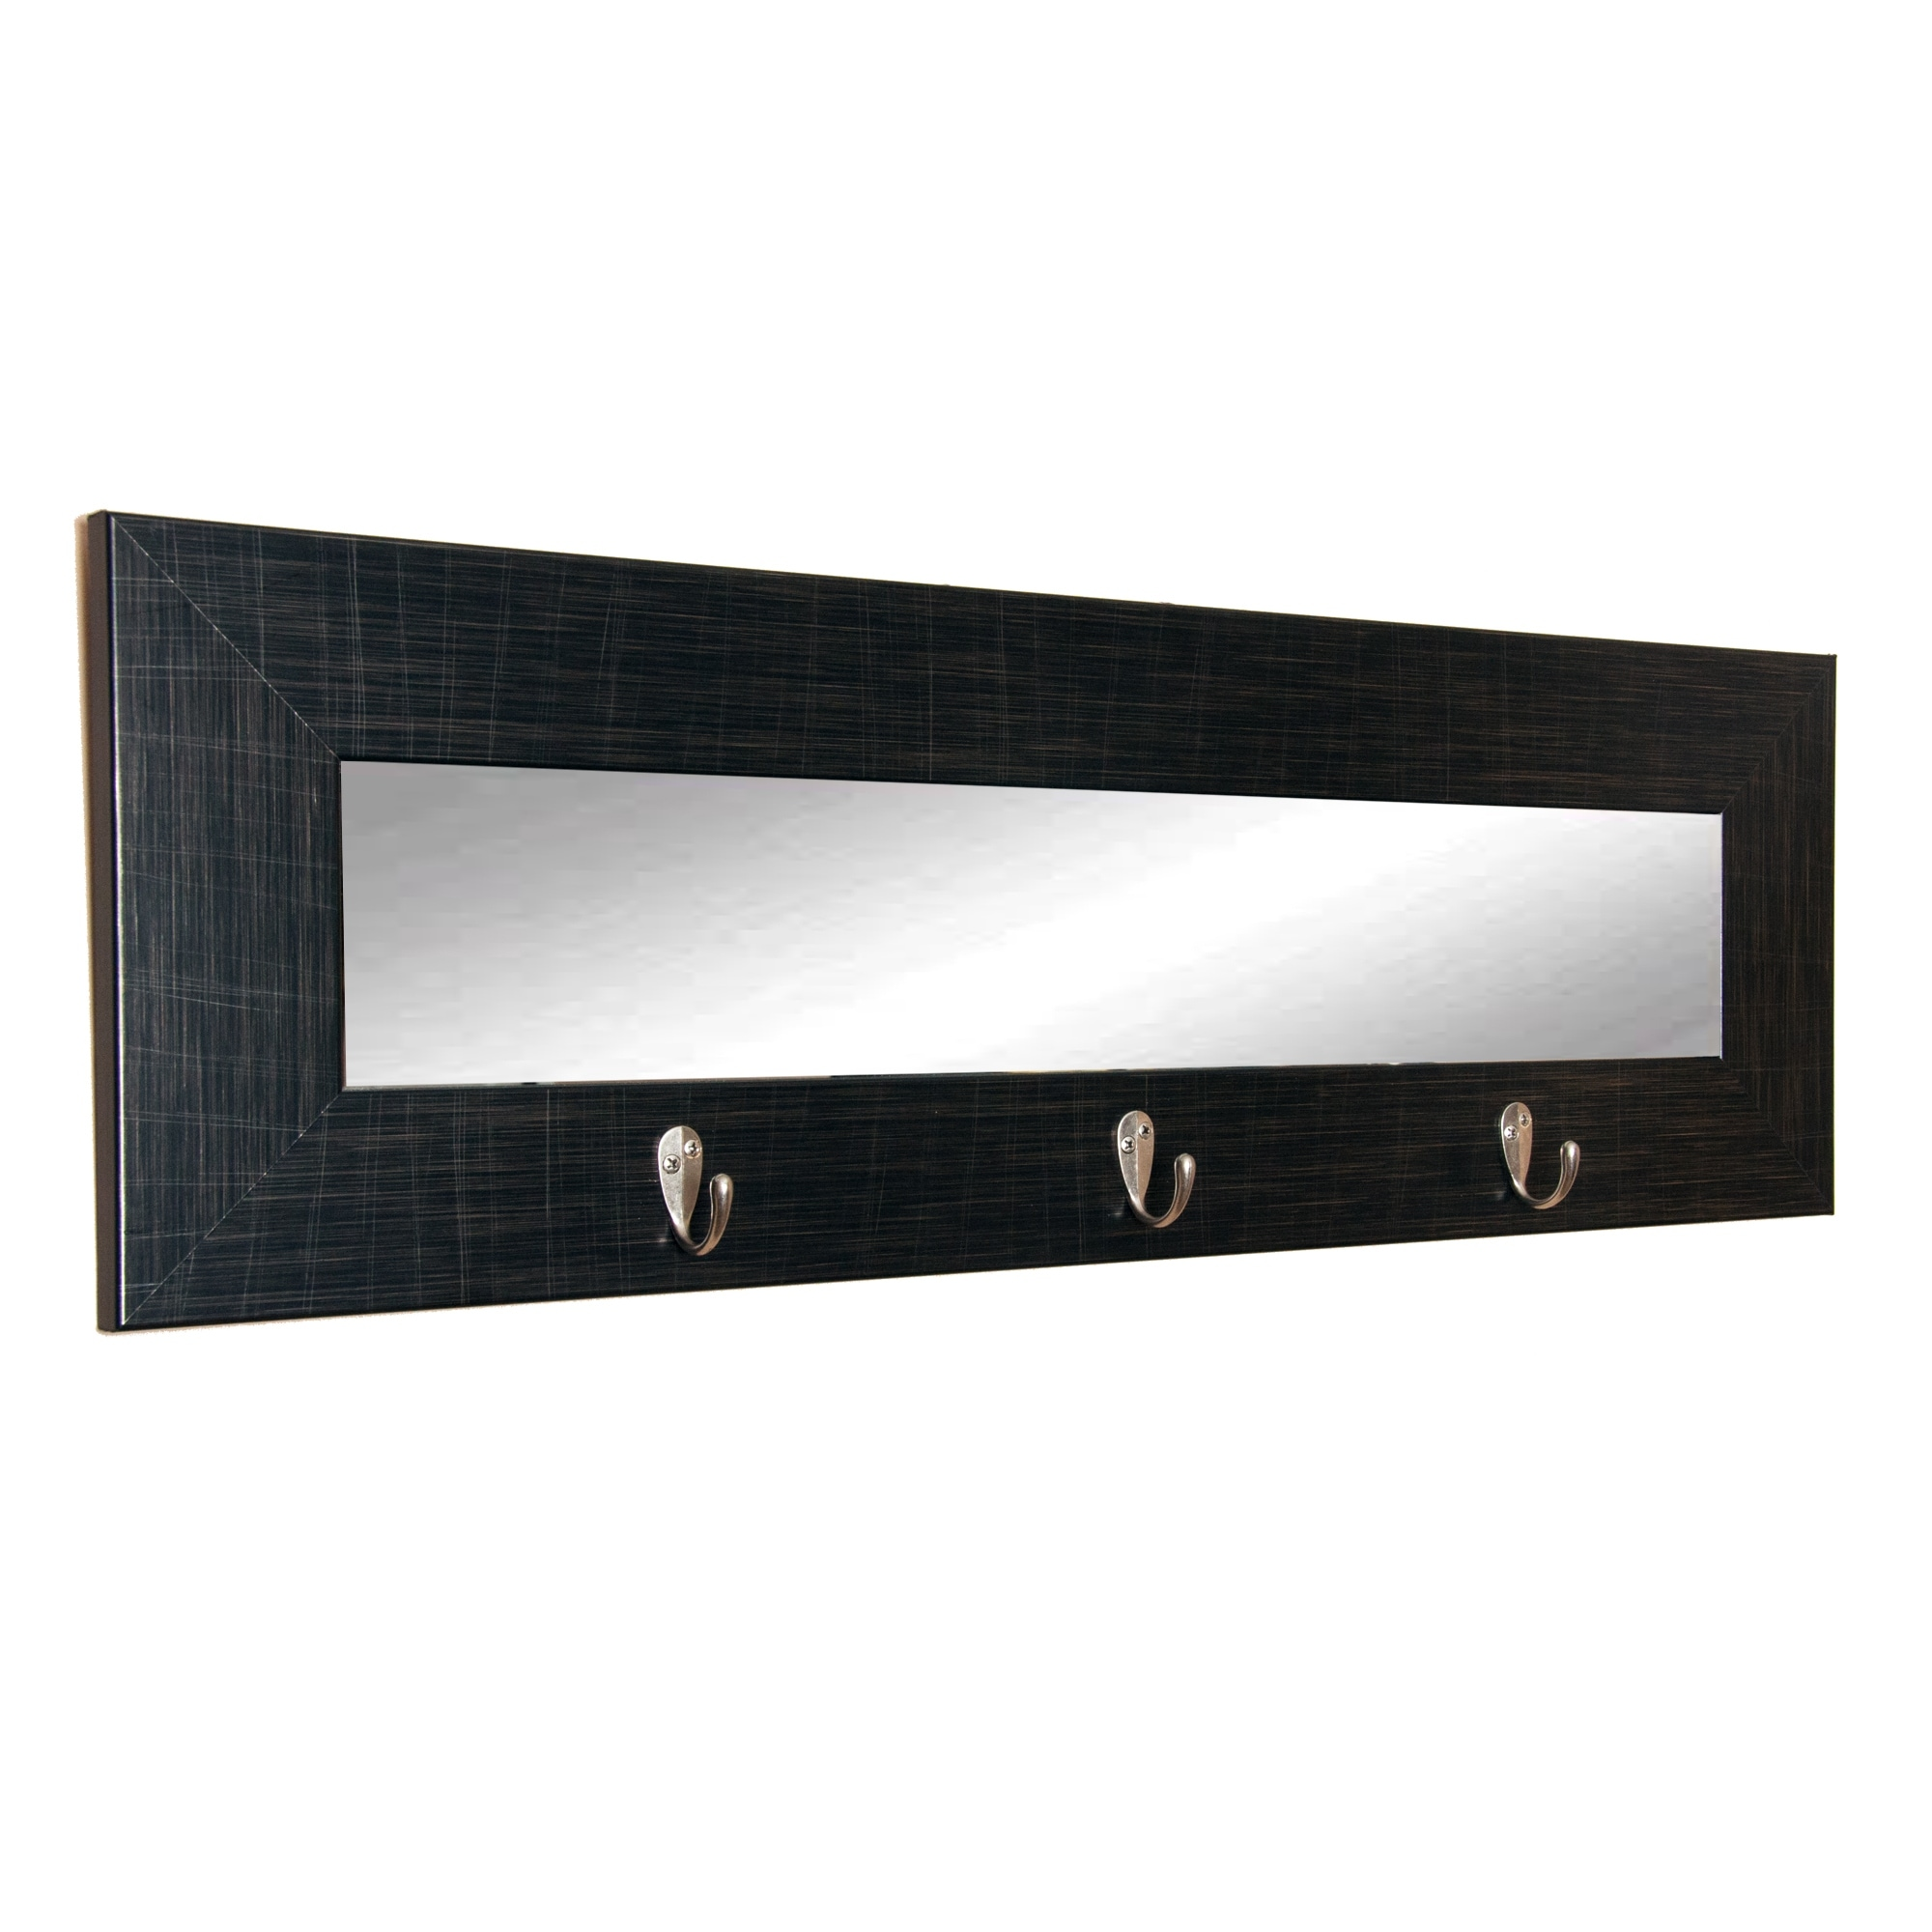 Scratched Black Framed Wall Mirror